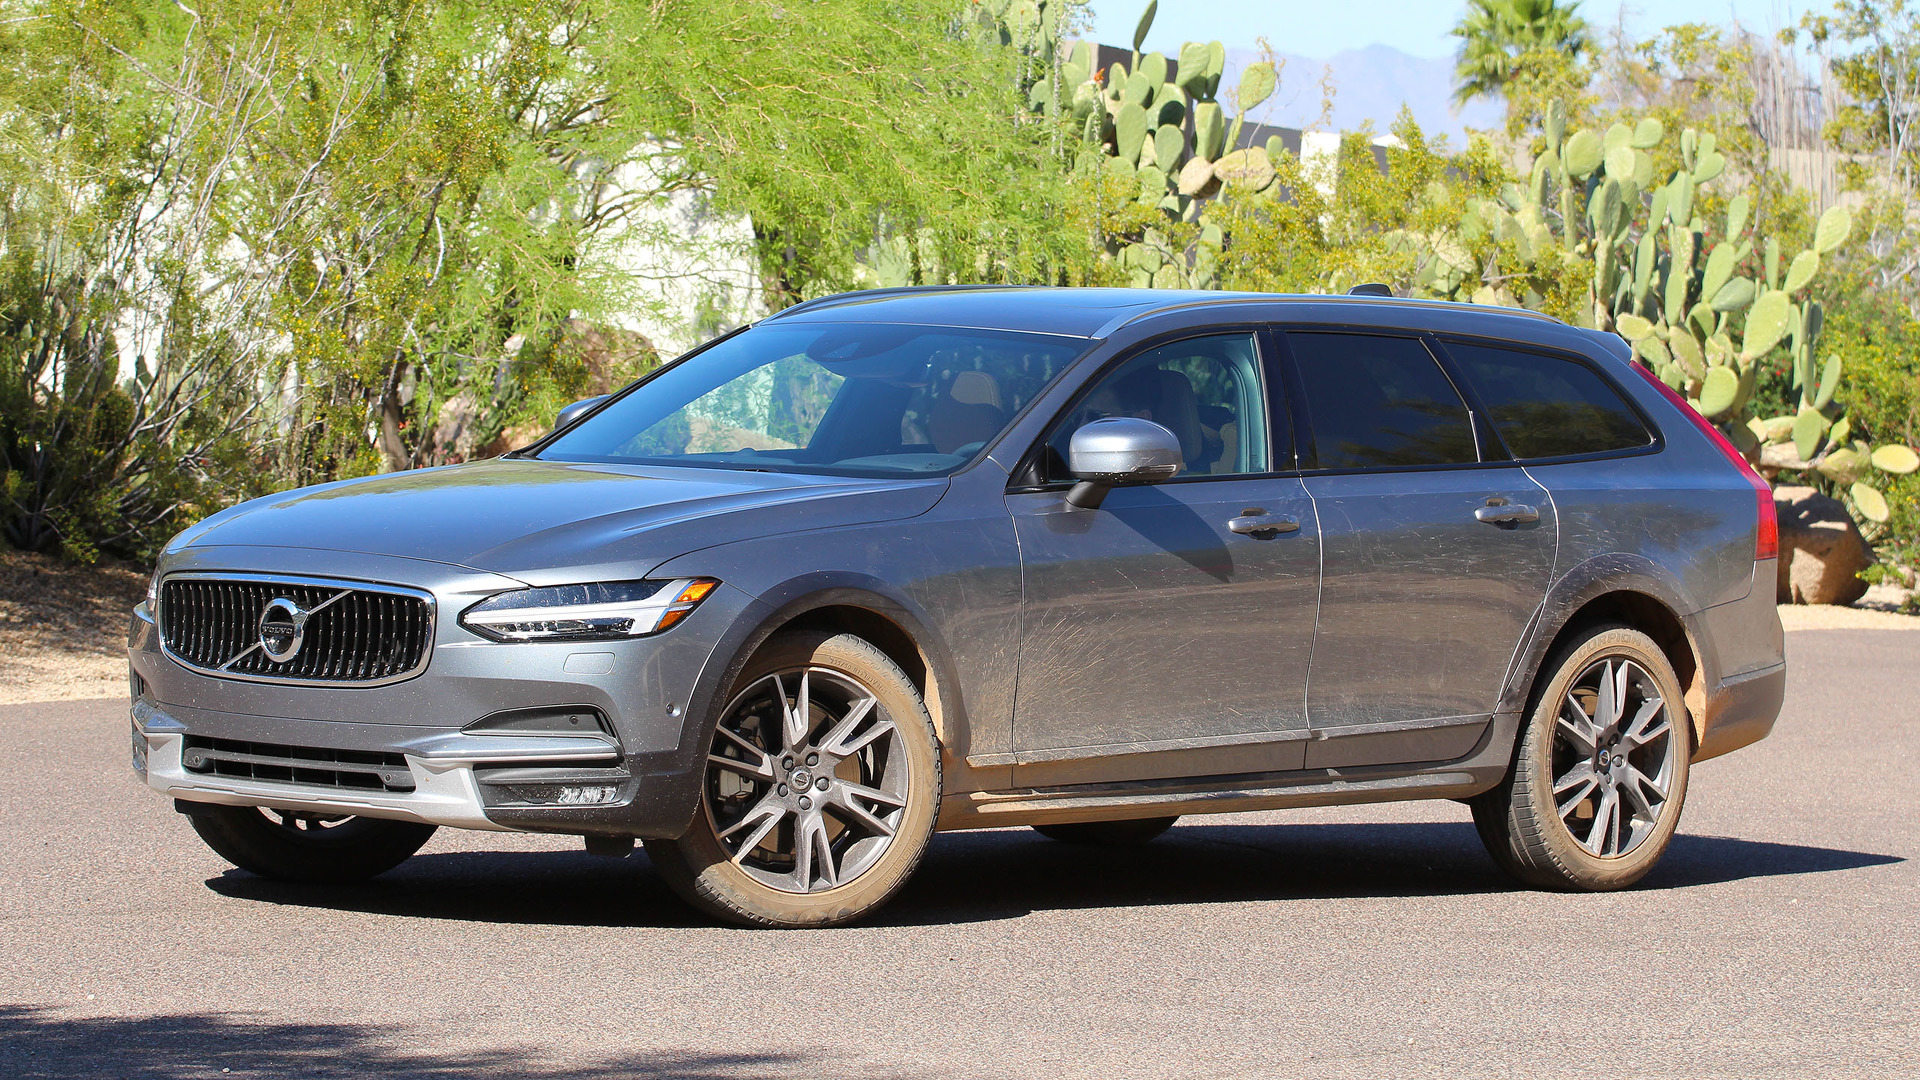 2017 volvo v90 cross country first drive like an suv but better. Black Bedroom Furniture Sets. Home Design Ideas